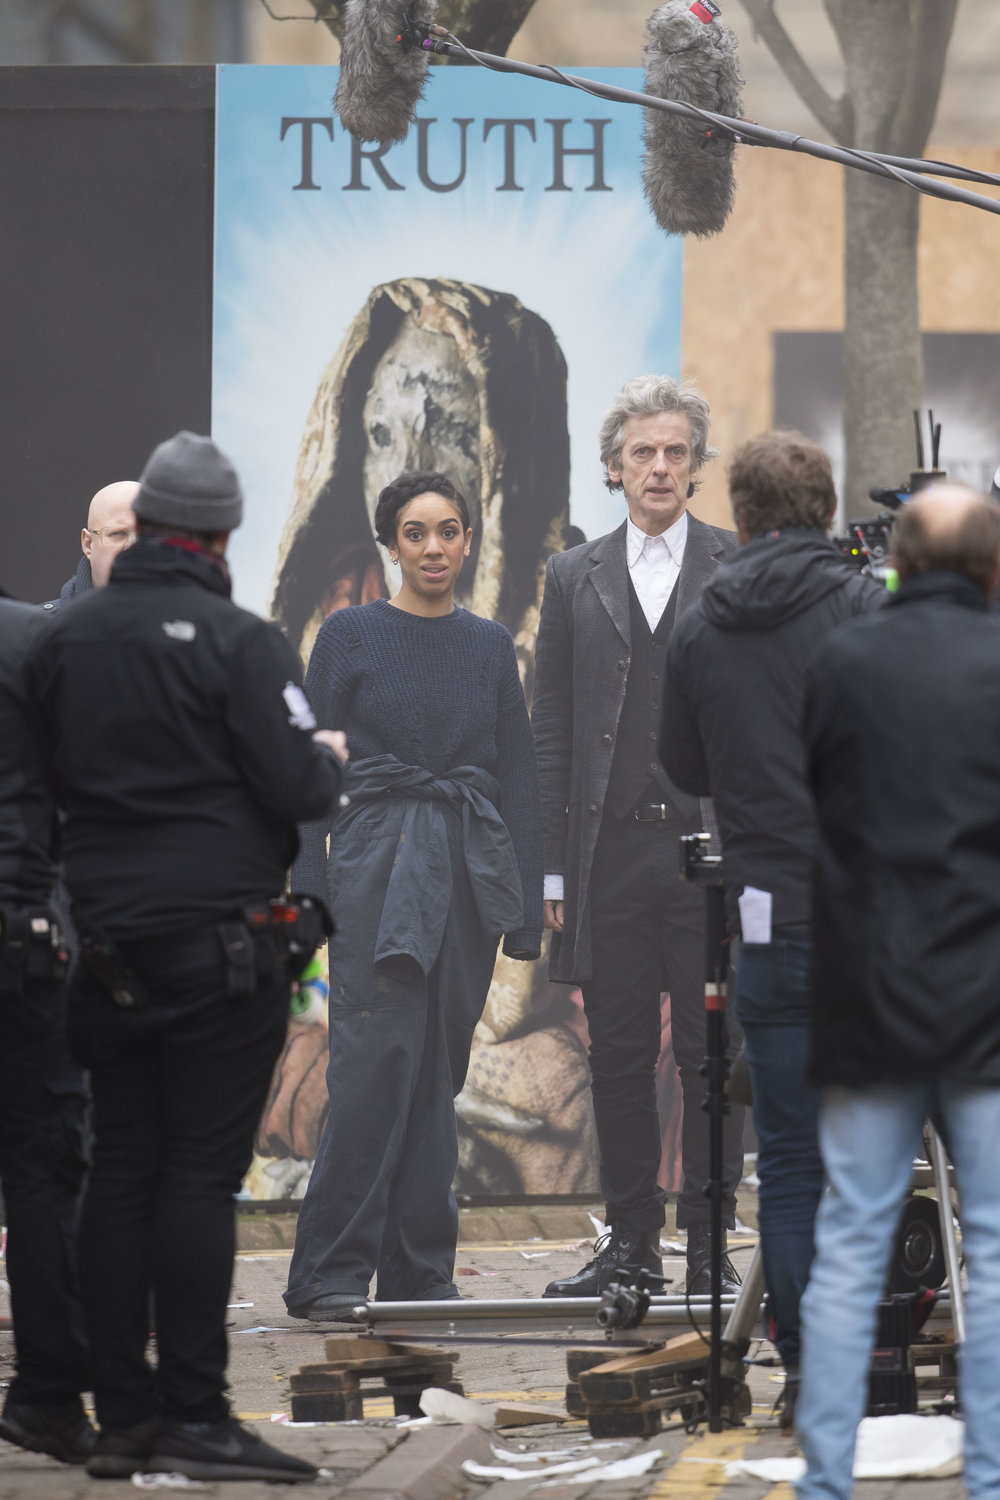 Peter Capaldi spotted filming with the doctors companion Pearl Mackie for Series 10 of Doctor Who at Mount Stuart Square in Cardiff Bay.